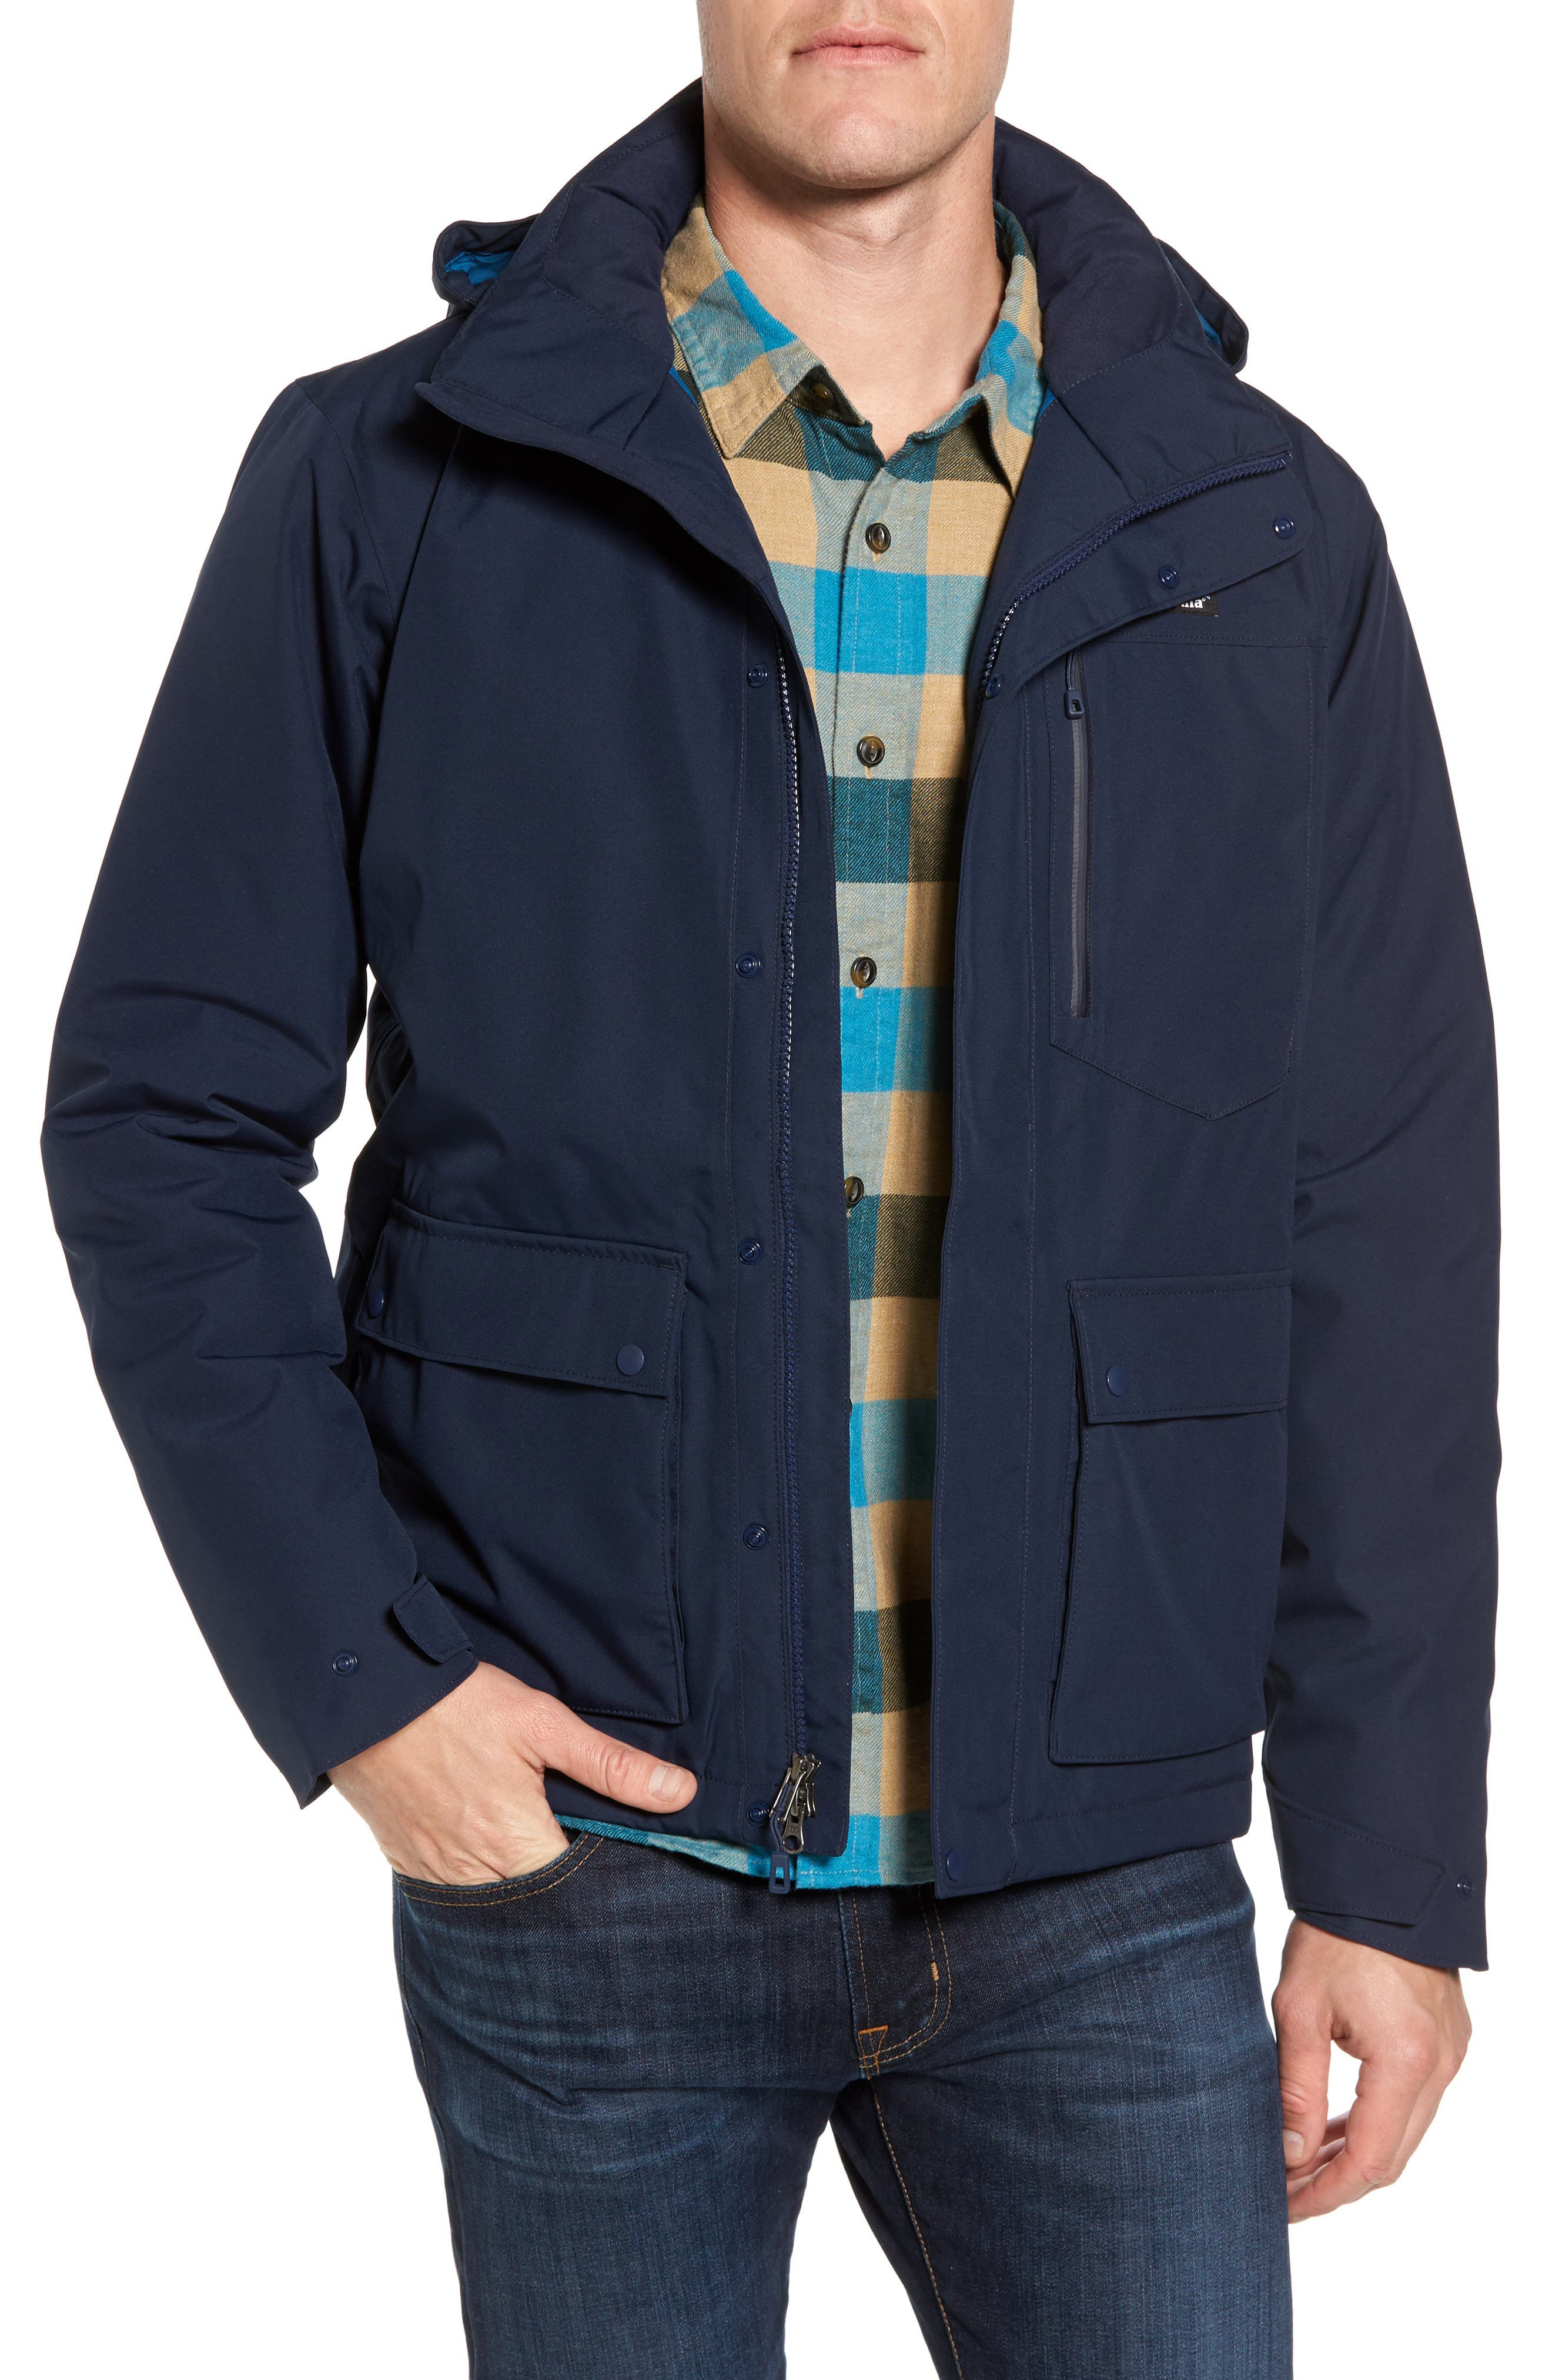 Topley Waterproof Jacket,                             Main thumbnail 1, color,                             Navy Blue